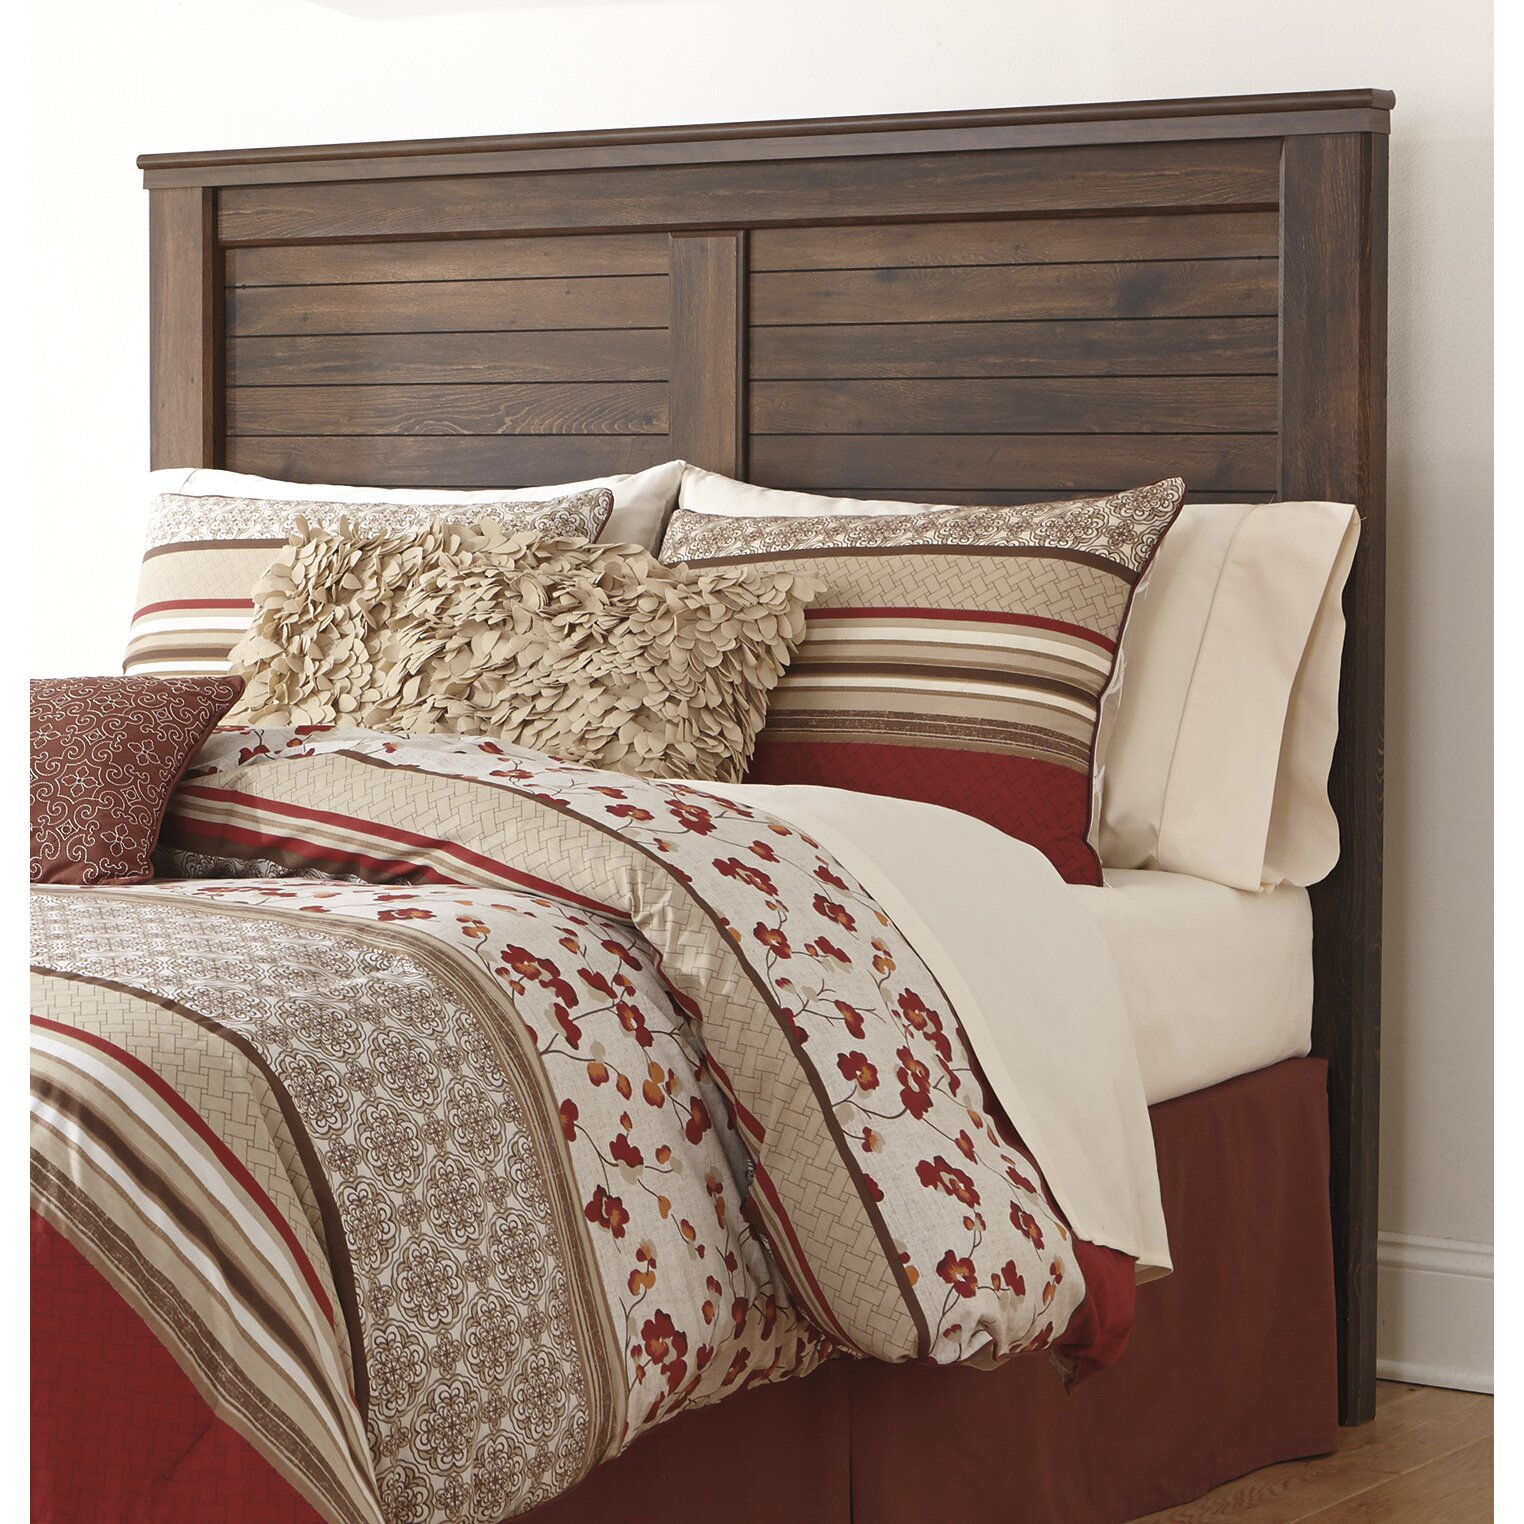 Loon peak flattop wood headboard reviews wayfair Headboard with pictures